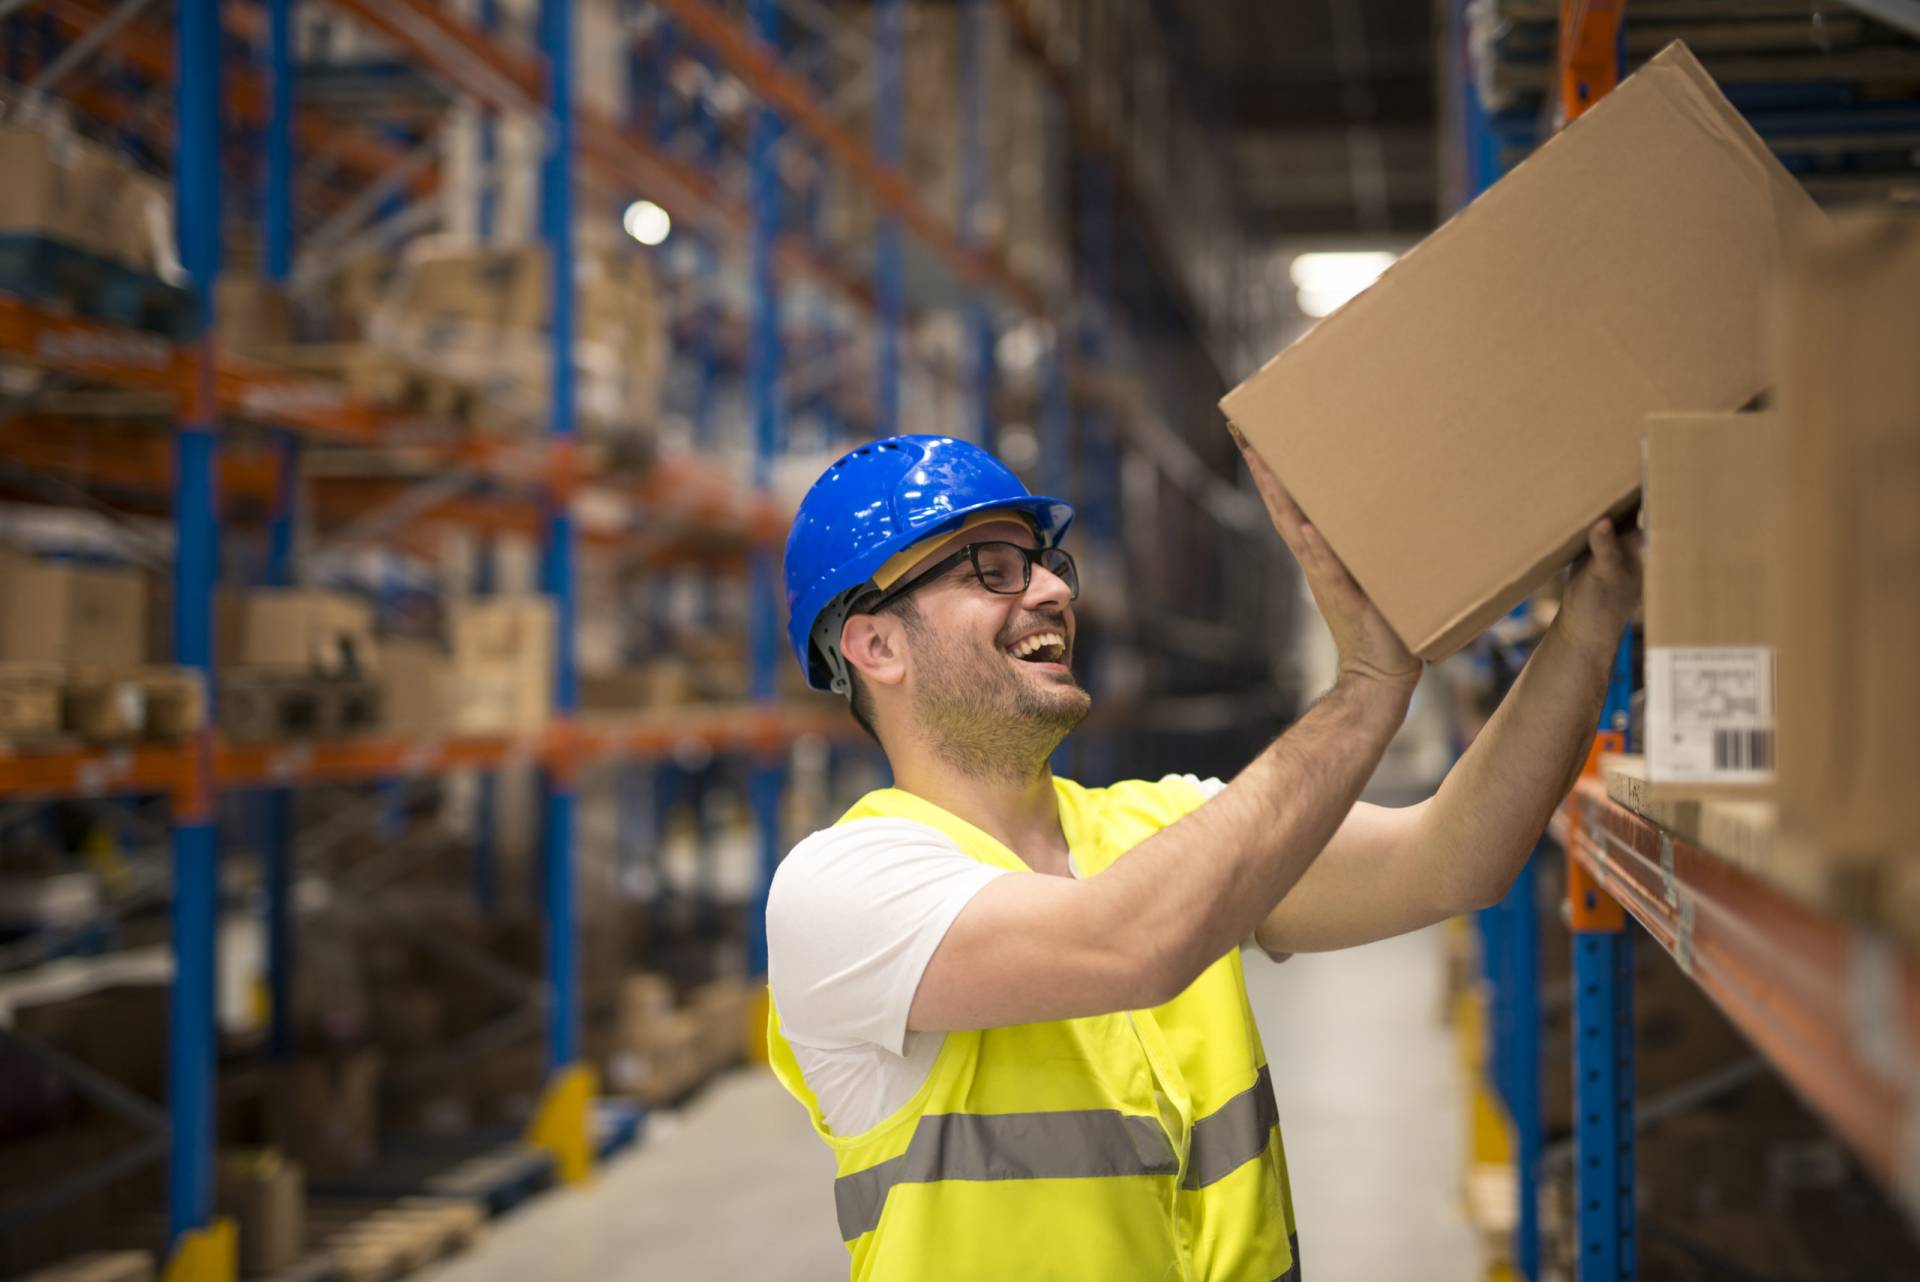 Working at warehouse. Smiling warehouse worker moving boxes on the shelf.